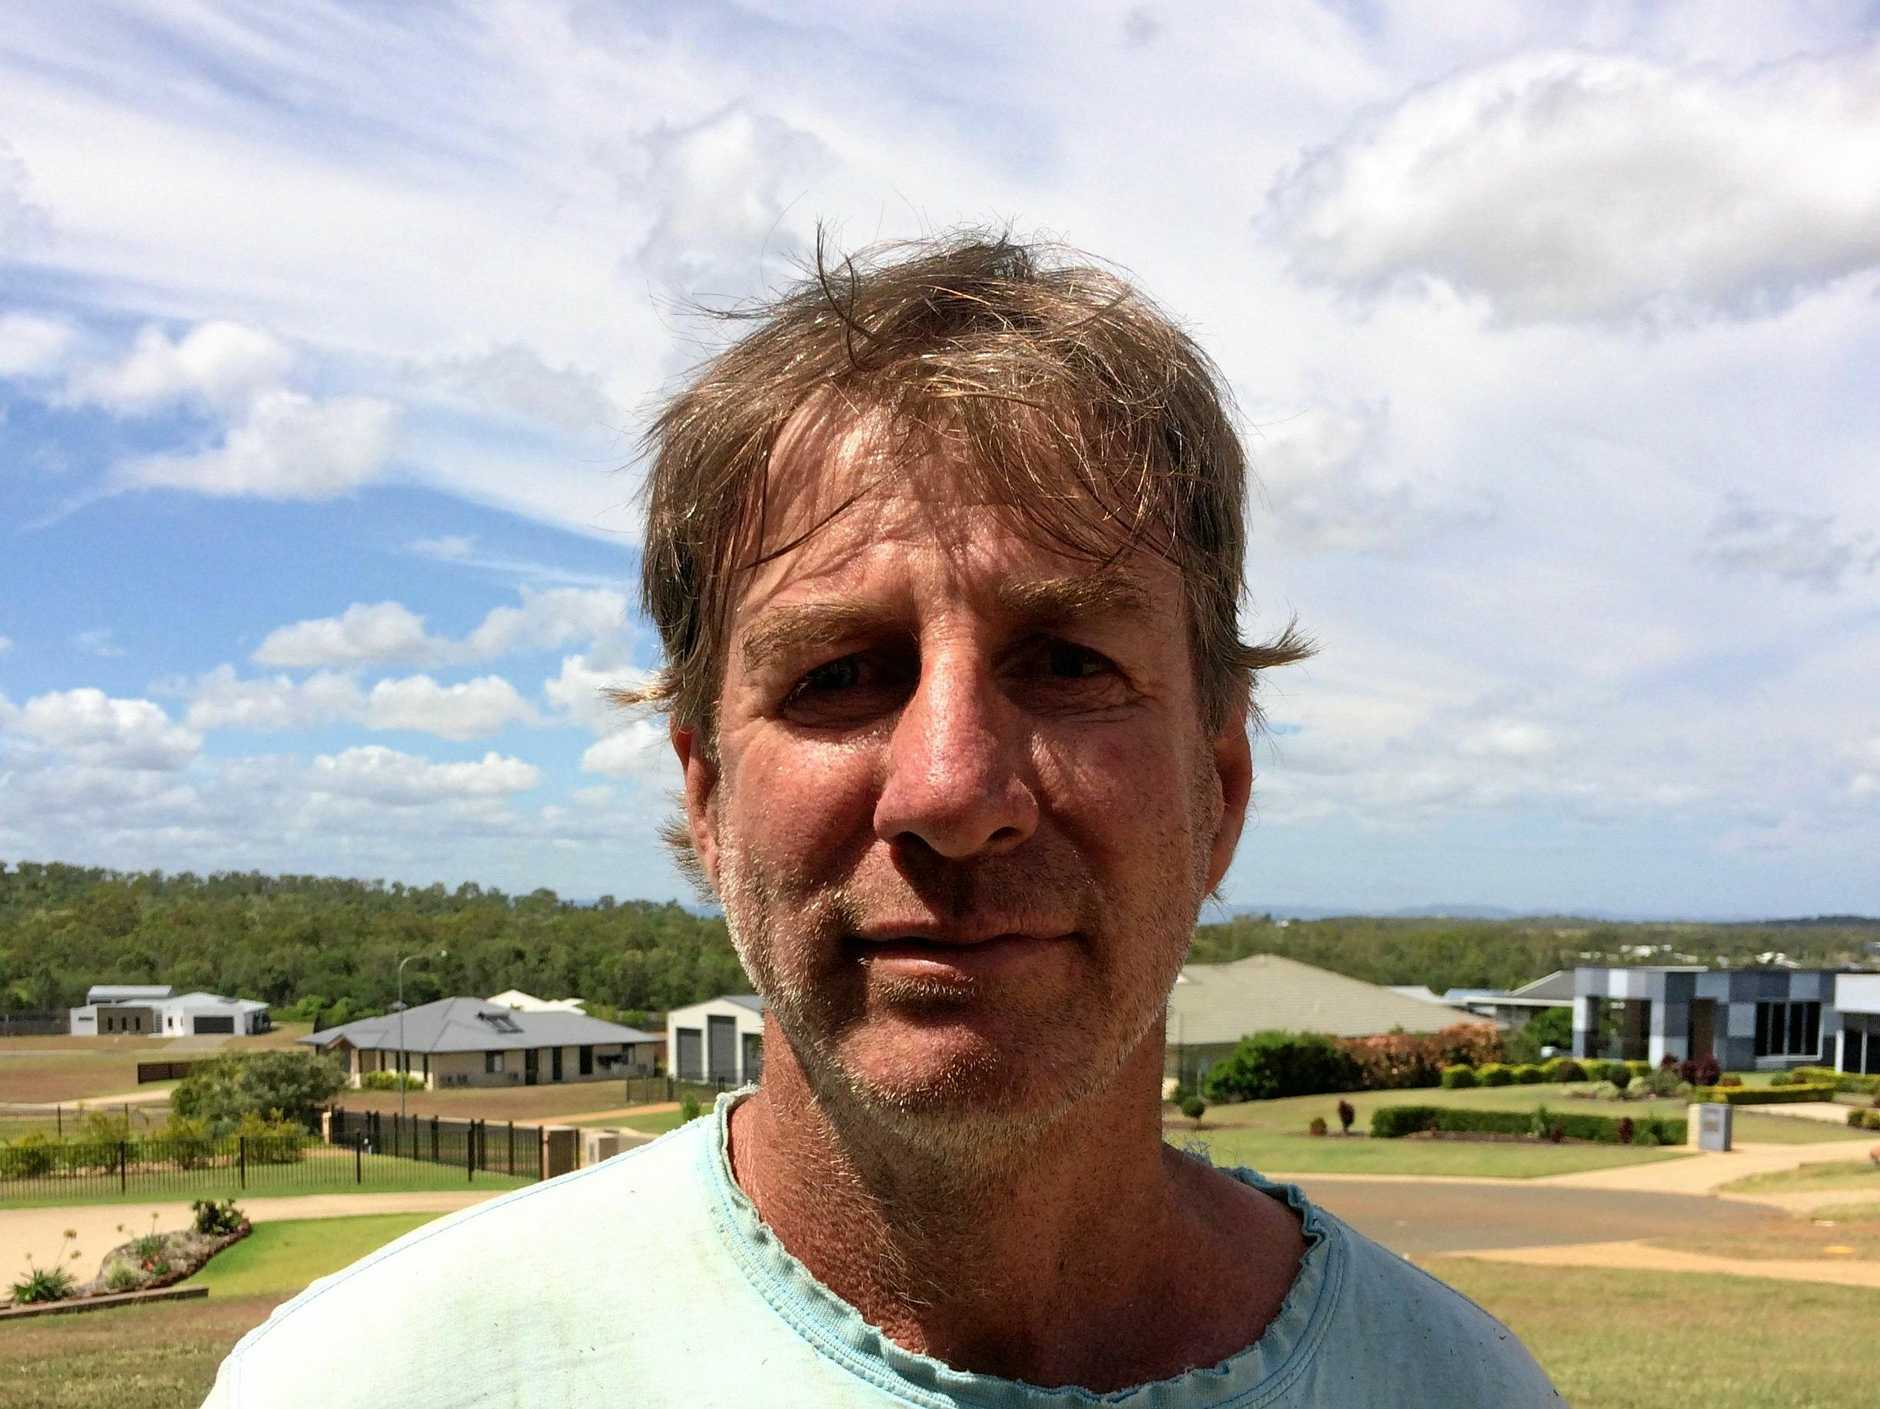 BOUNDARY CHANGE: Rockyview resident John Cummings is supportive of his suburb moving from the Livingstone Shire jurisdiction to the Rockhampton Region.